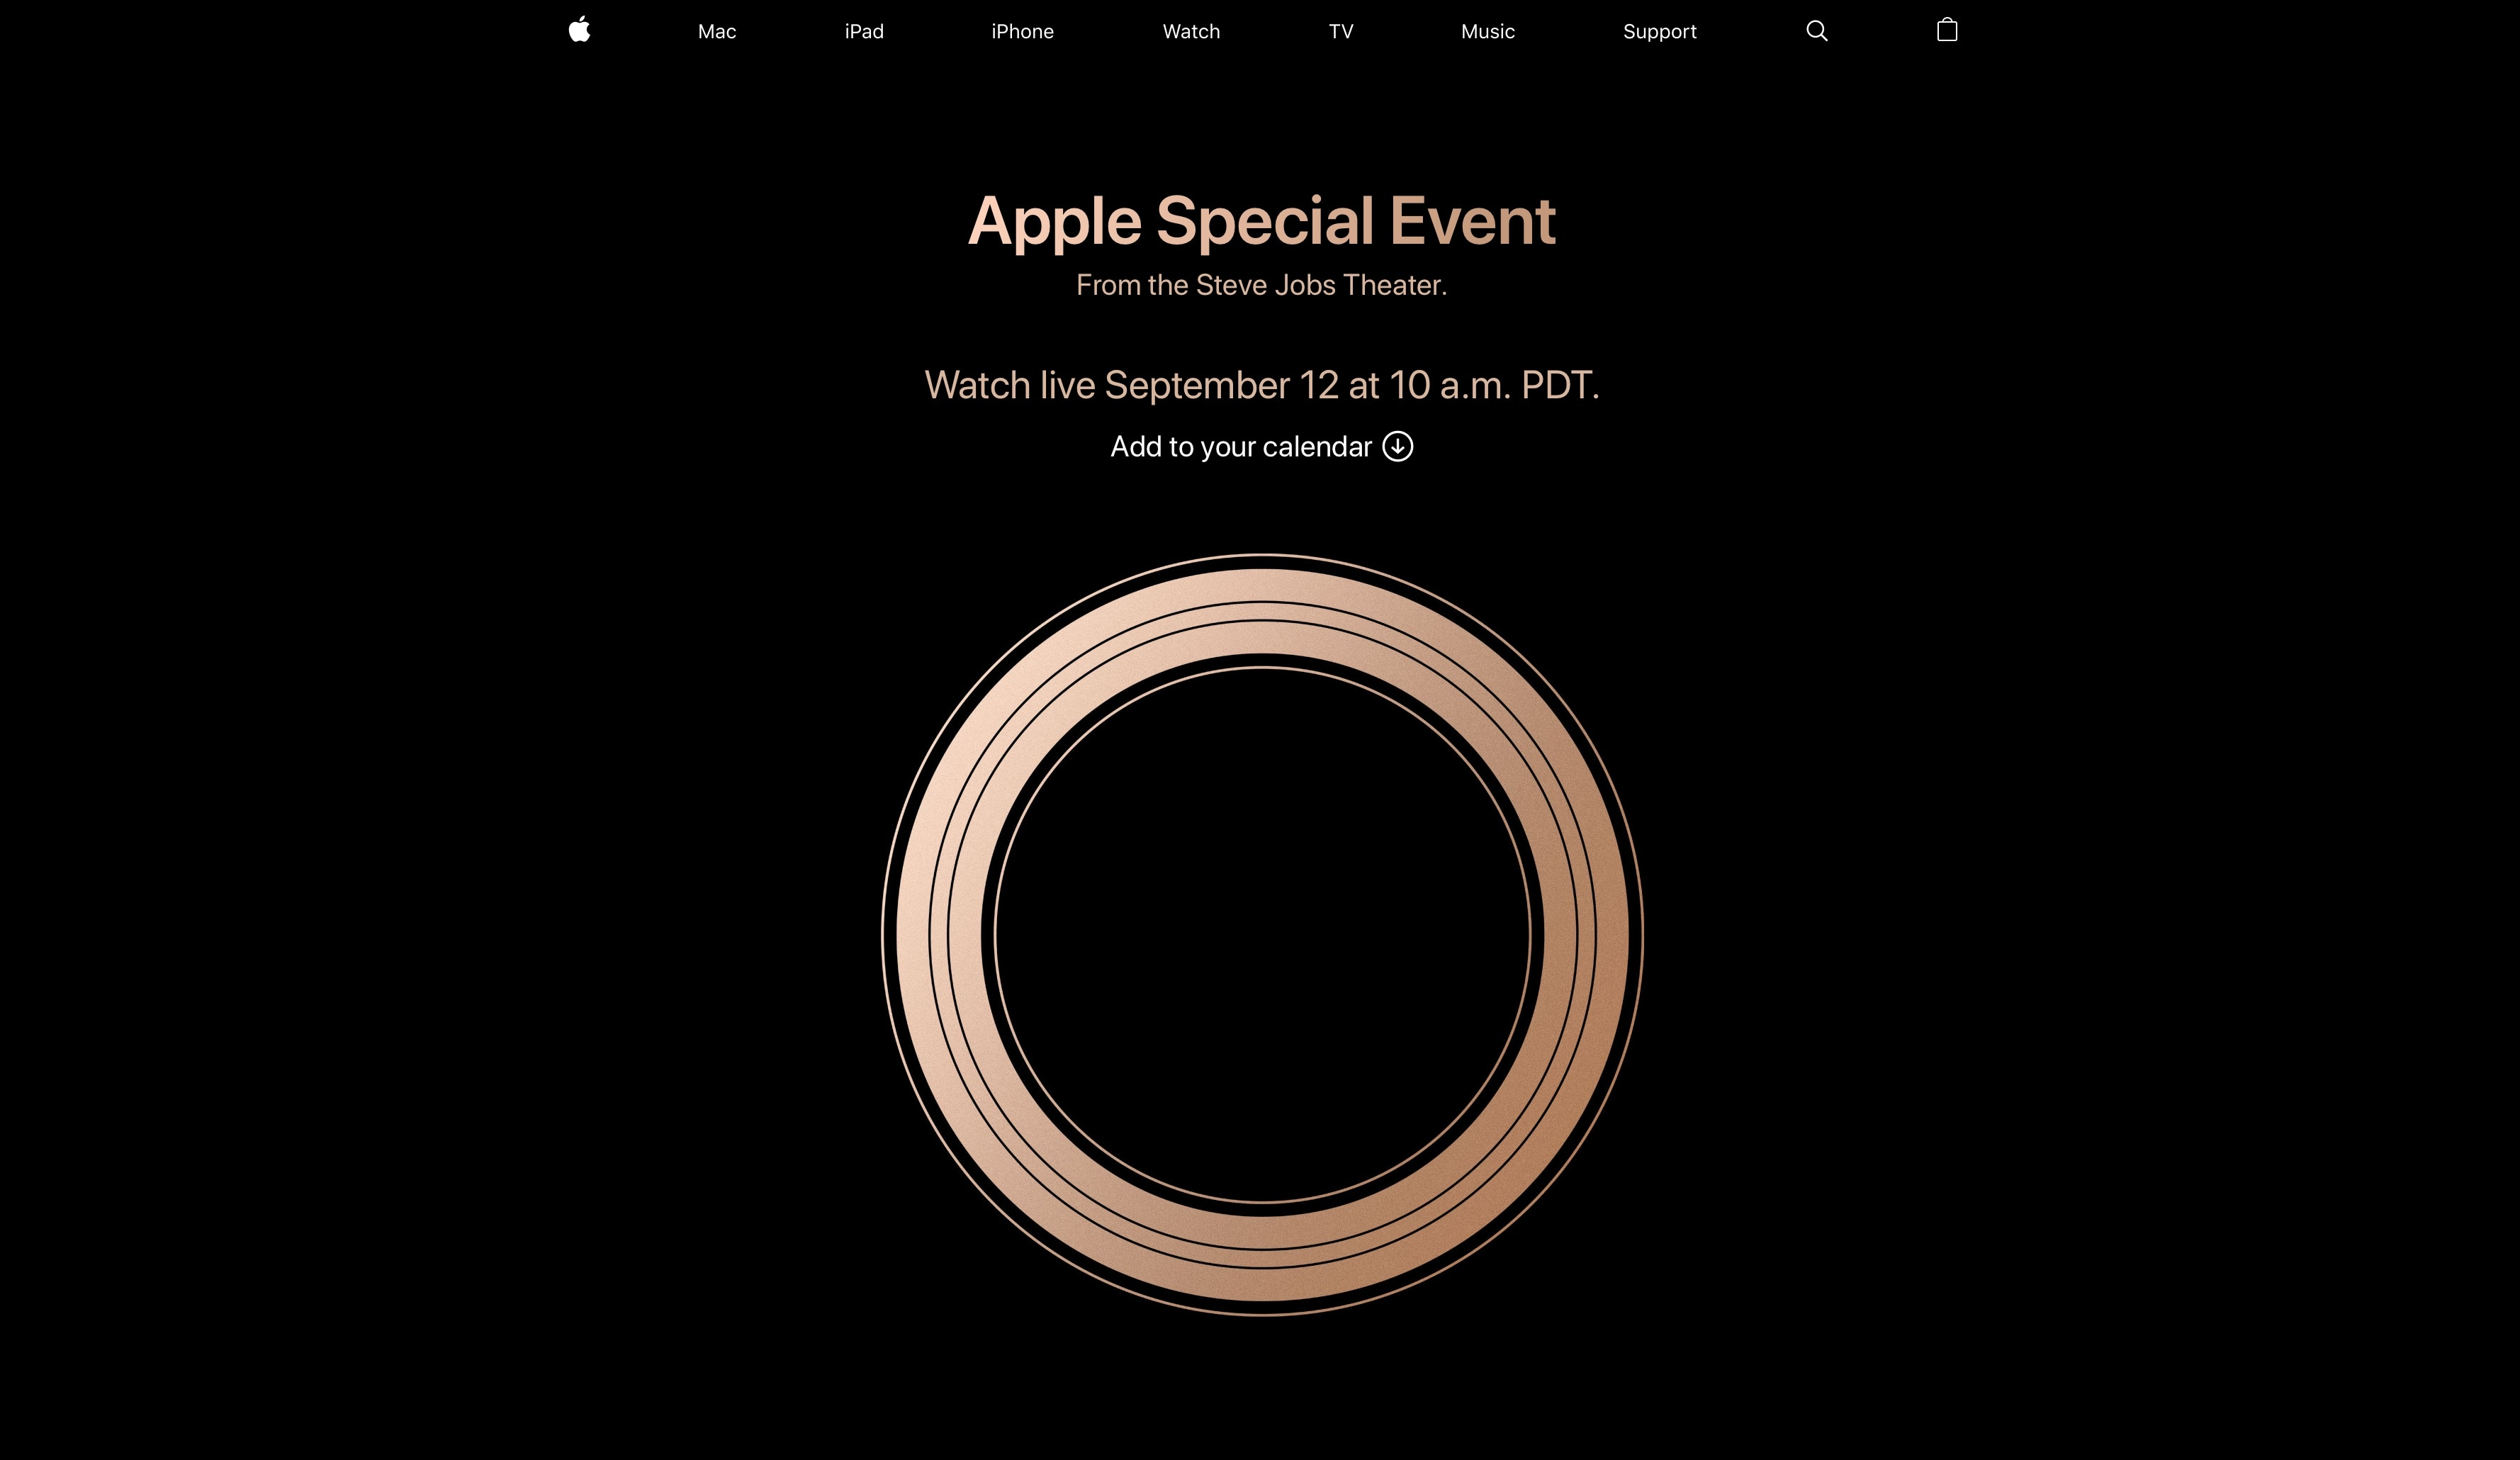 Página no Apple.com para a transmissão do evento especial da Apple (setembro de 2018)